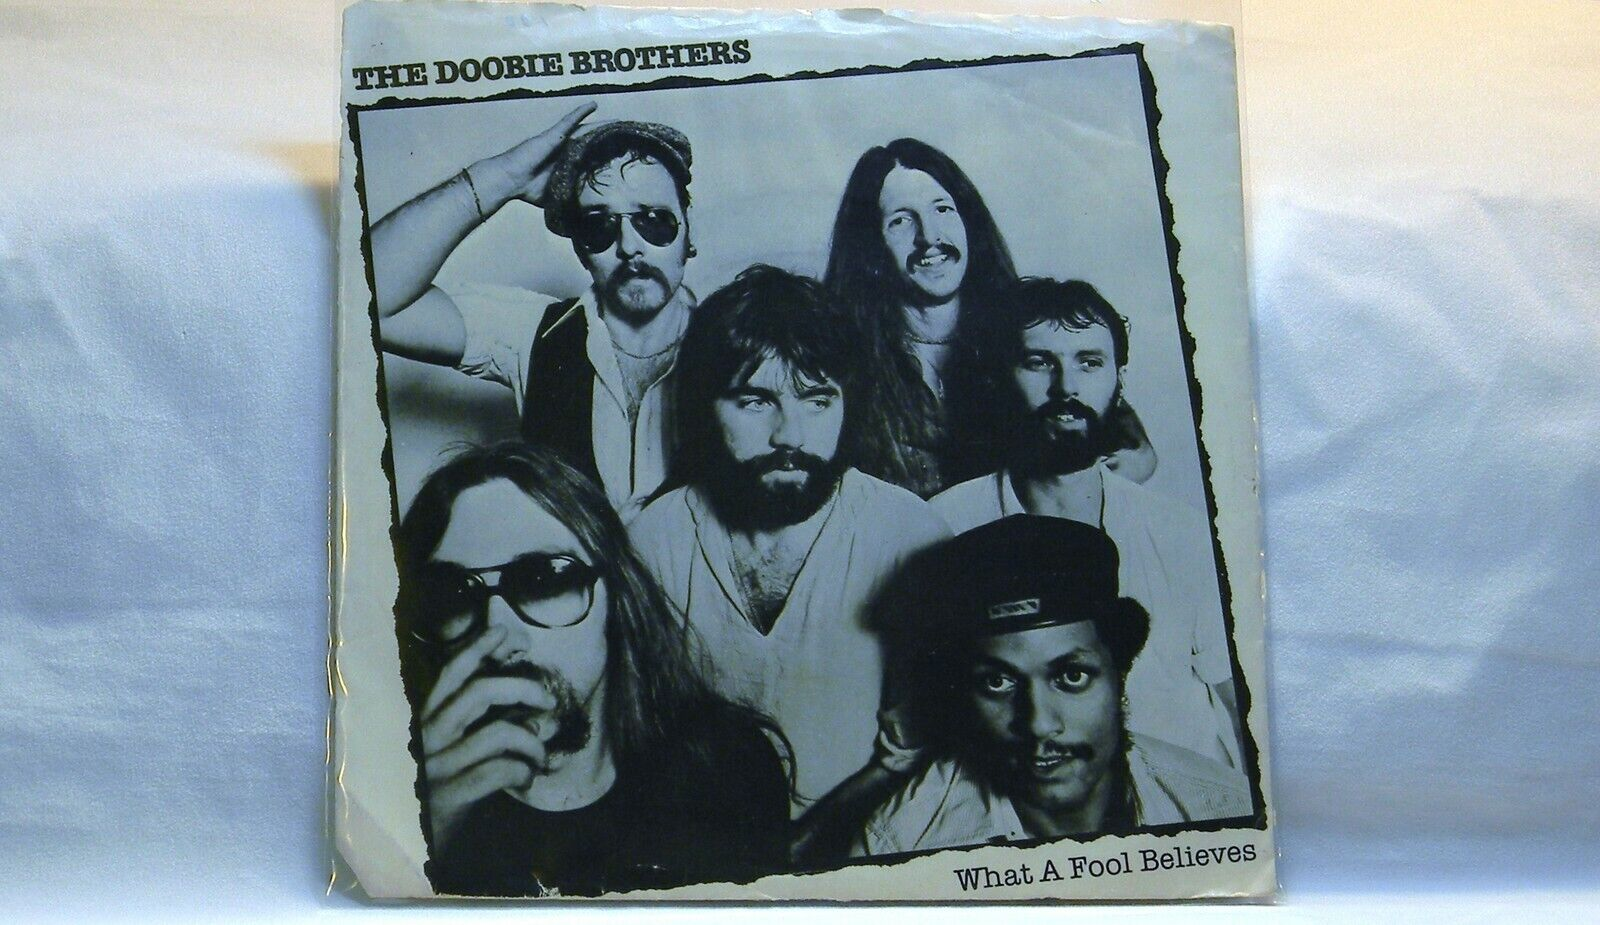 THE DOBBIE BROTHERS WHAT A FOOL BELIEVES 45 RPM RECORD PICTURE SLEEVE ONLY